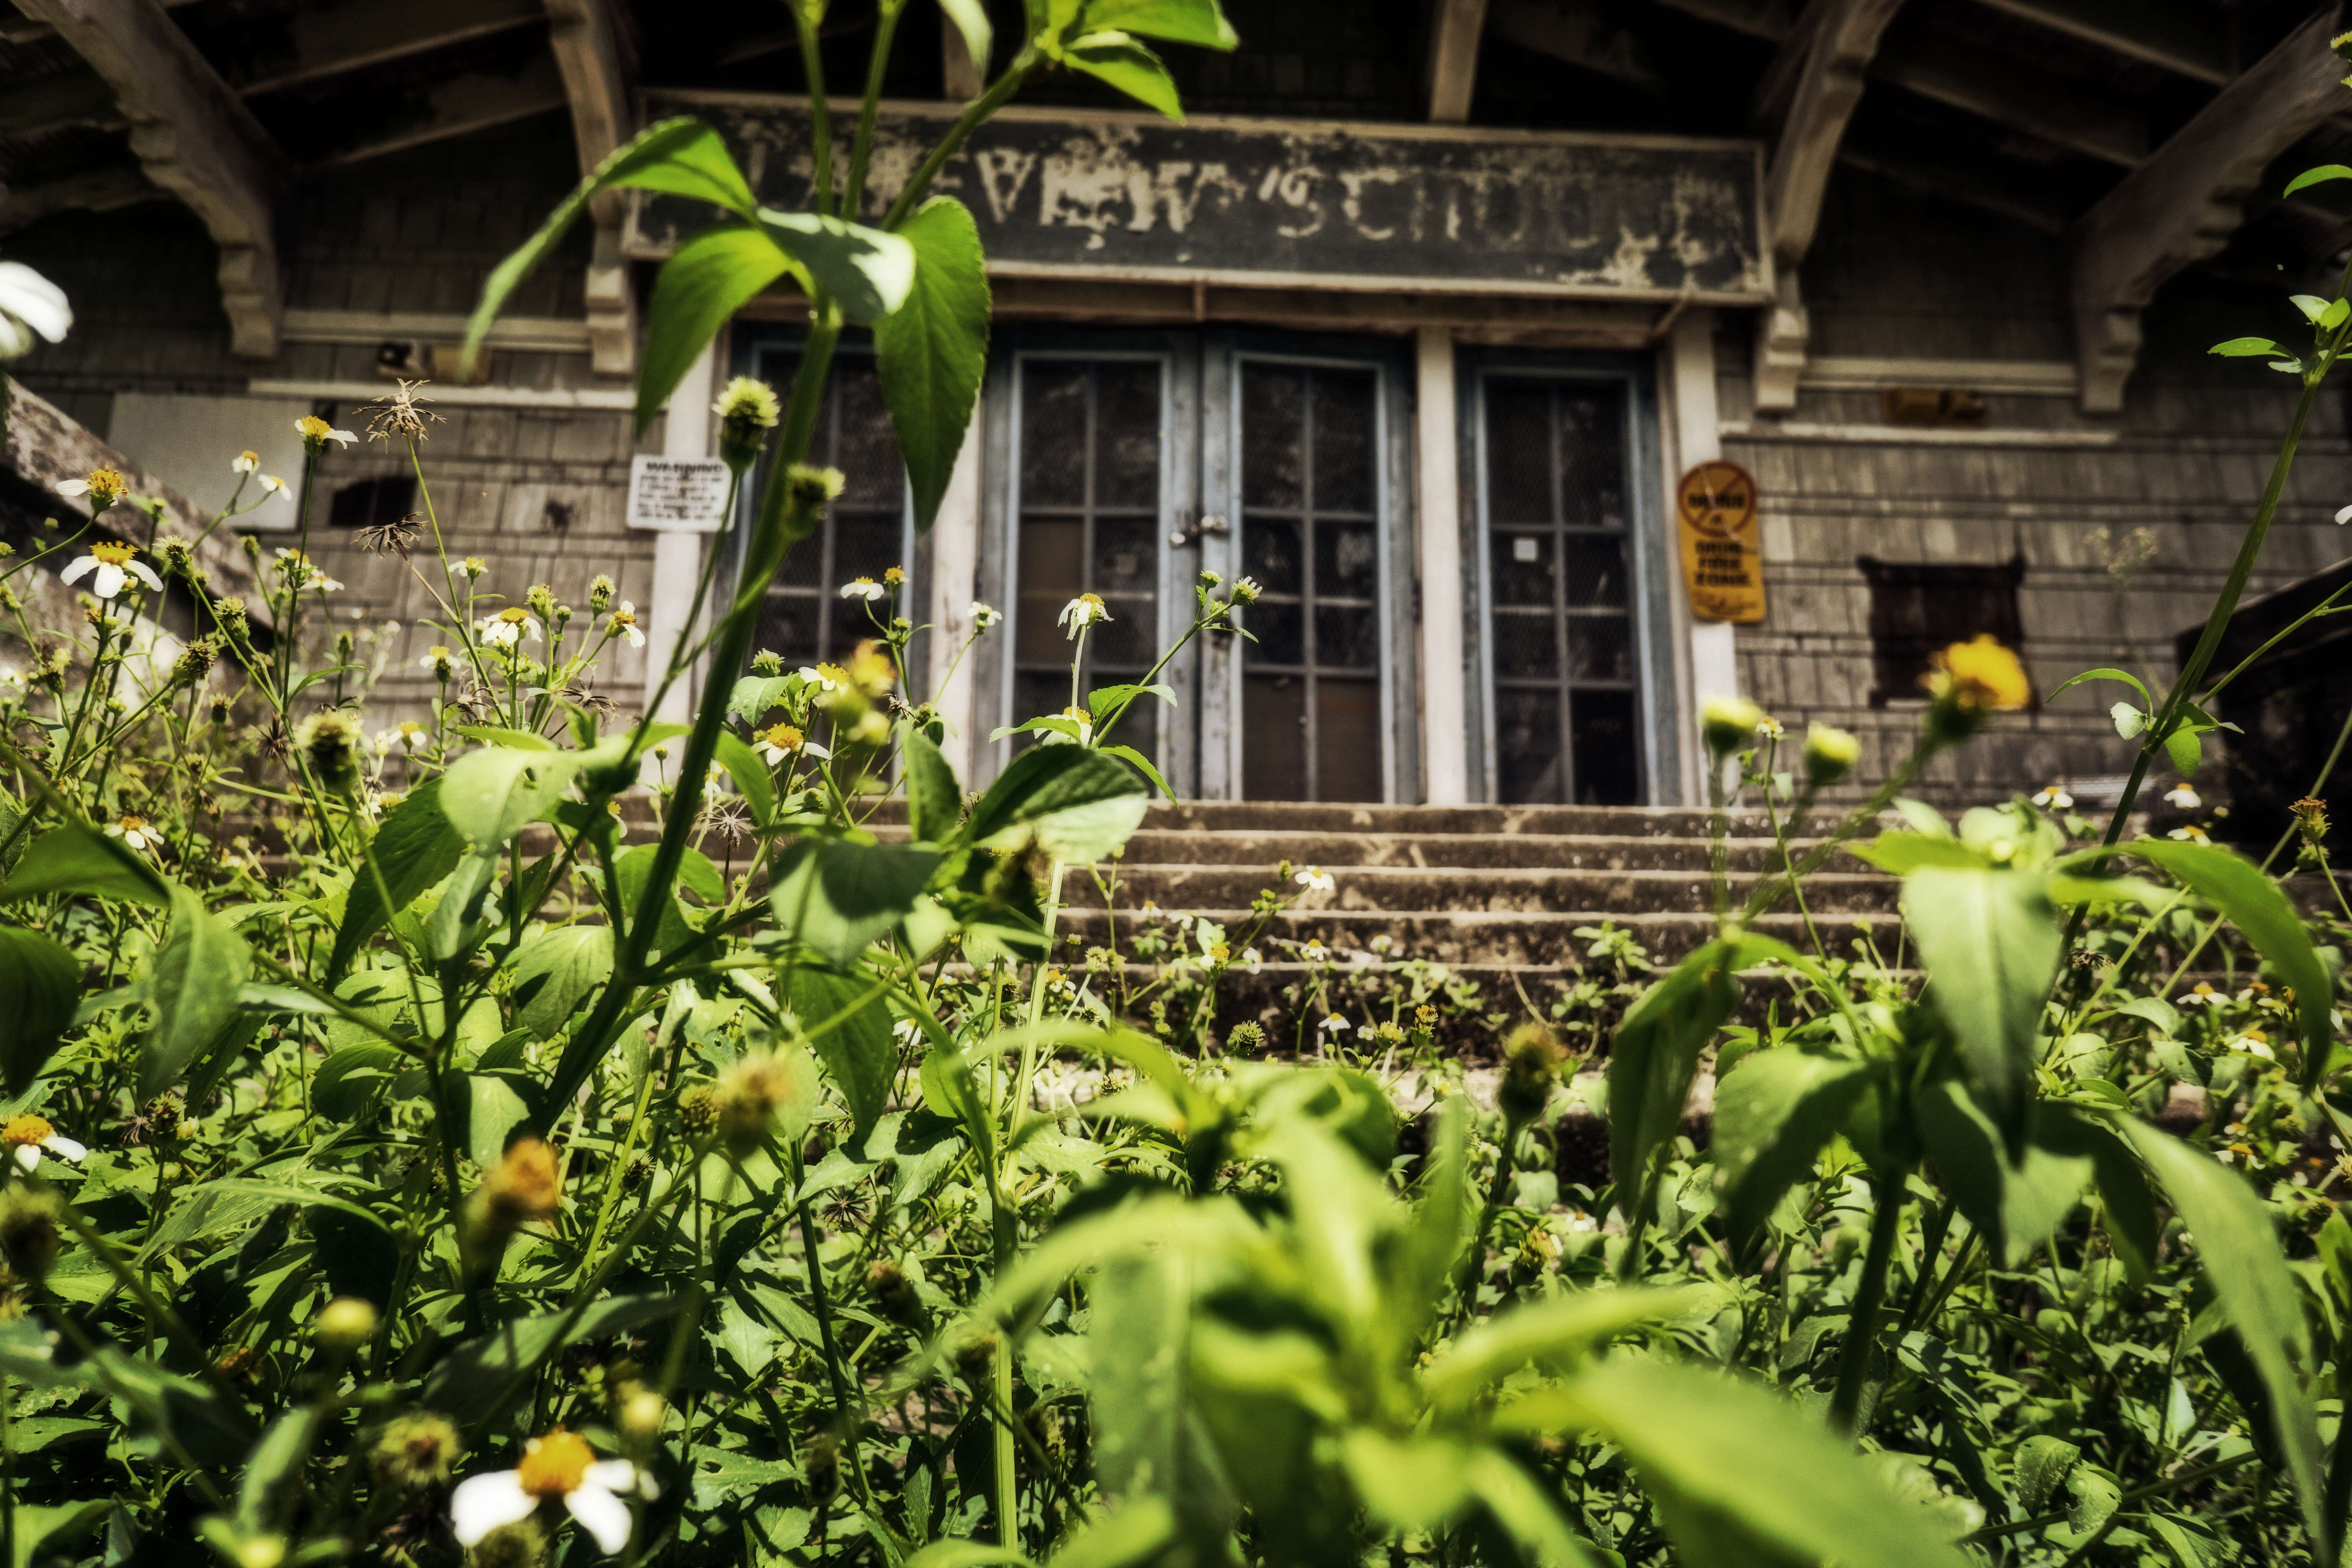 Lakeview School, abandoned and overgrown.